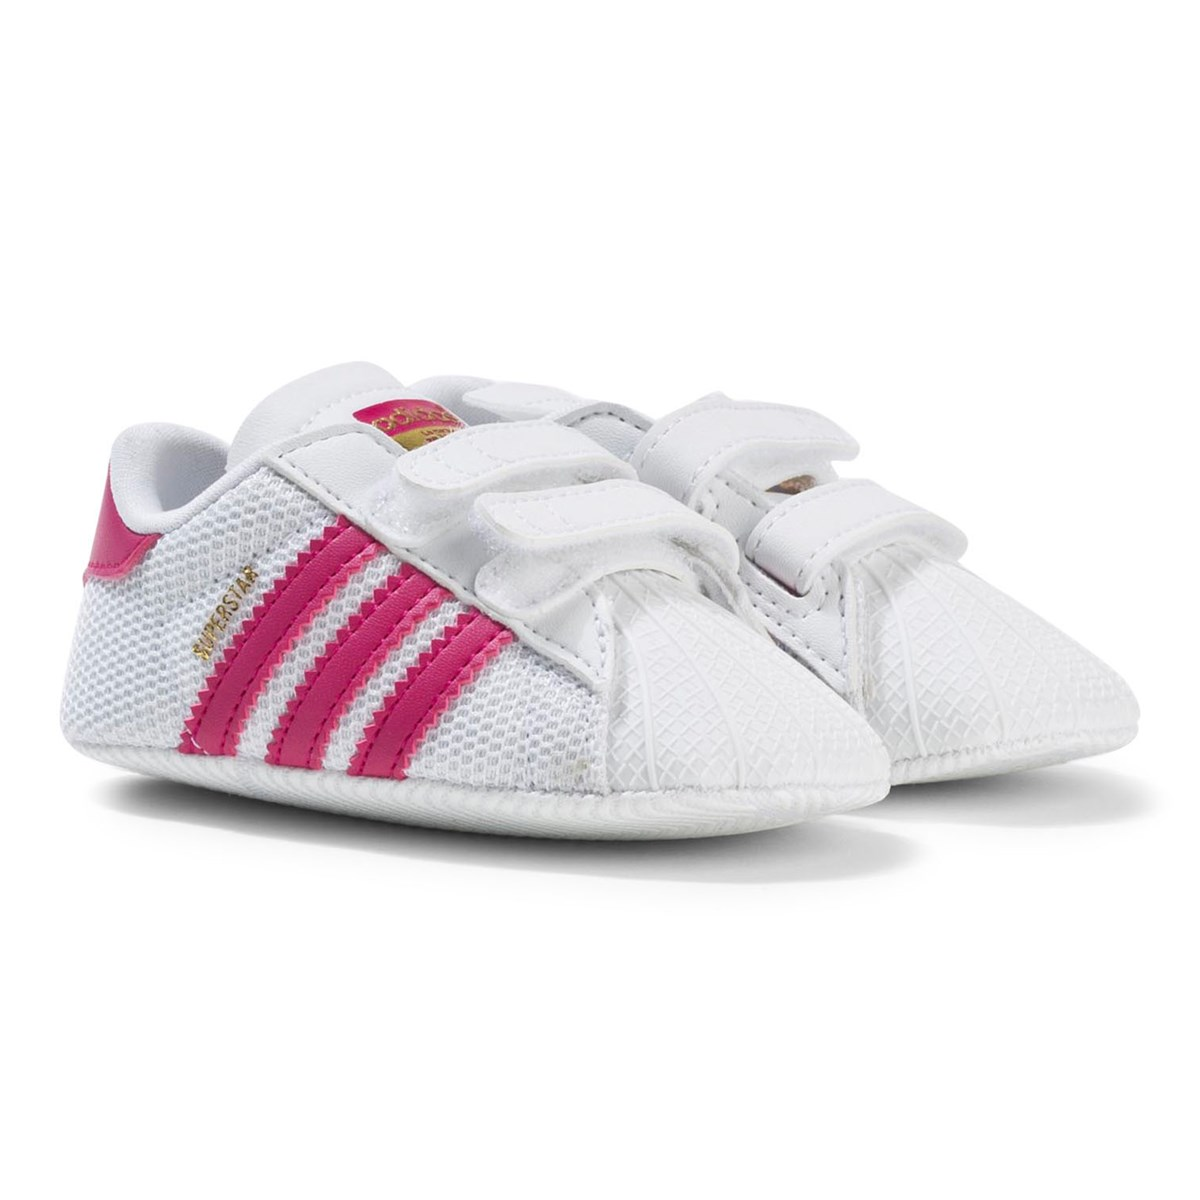 adidas Originals White and Pink Superstar Crib Trainers Babyshop.no